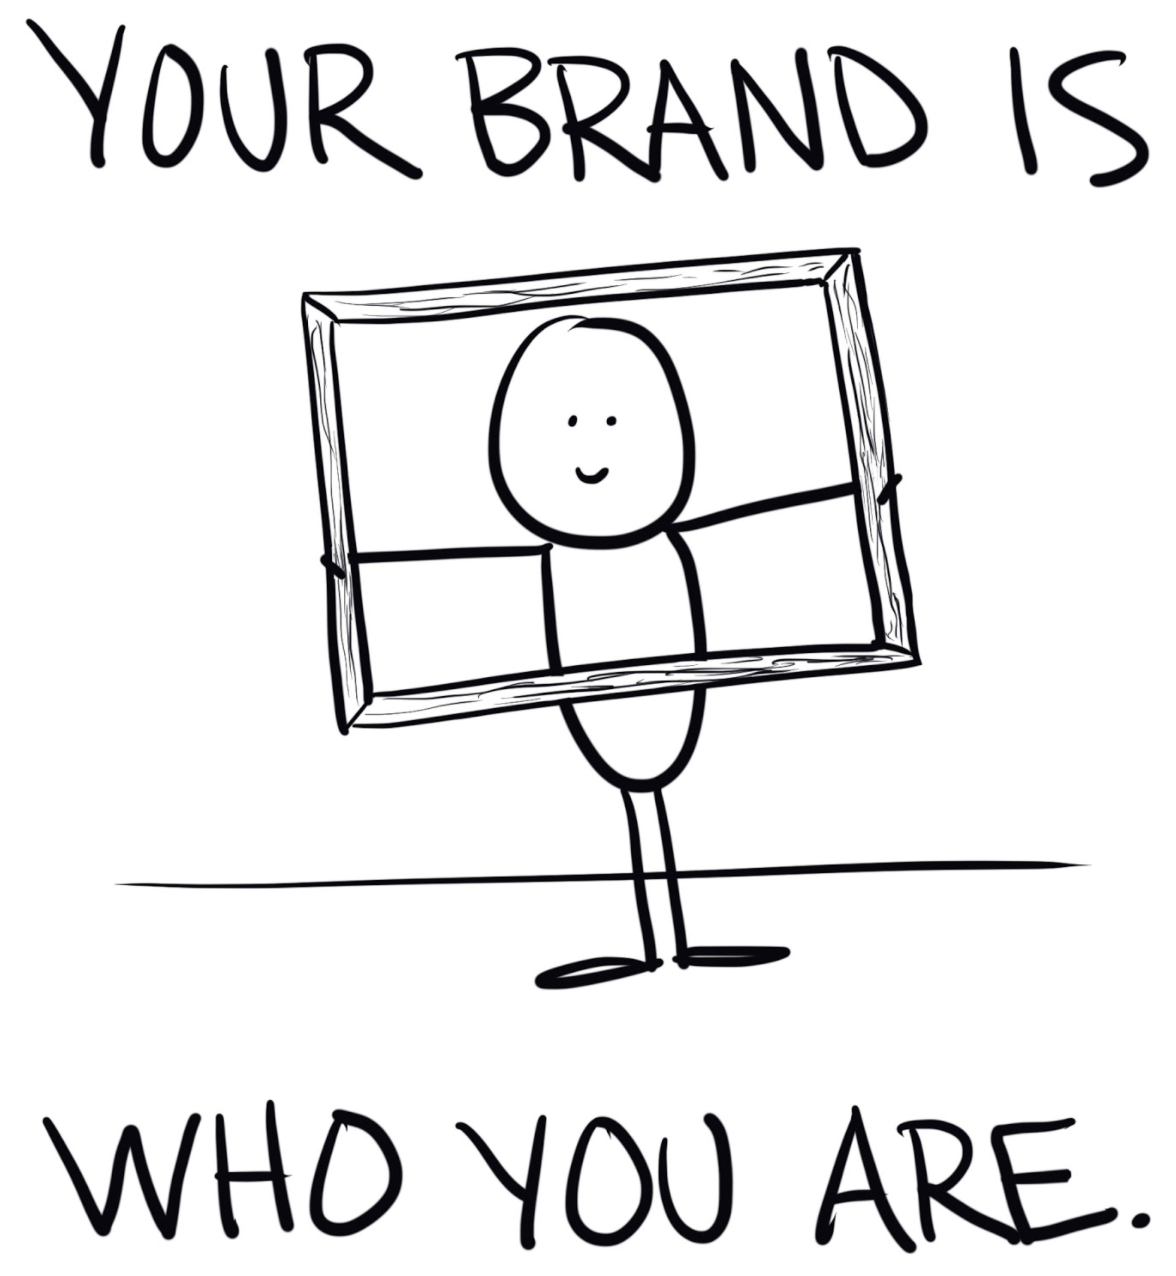 Your brand is who you are - Ryan Foland